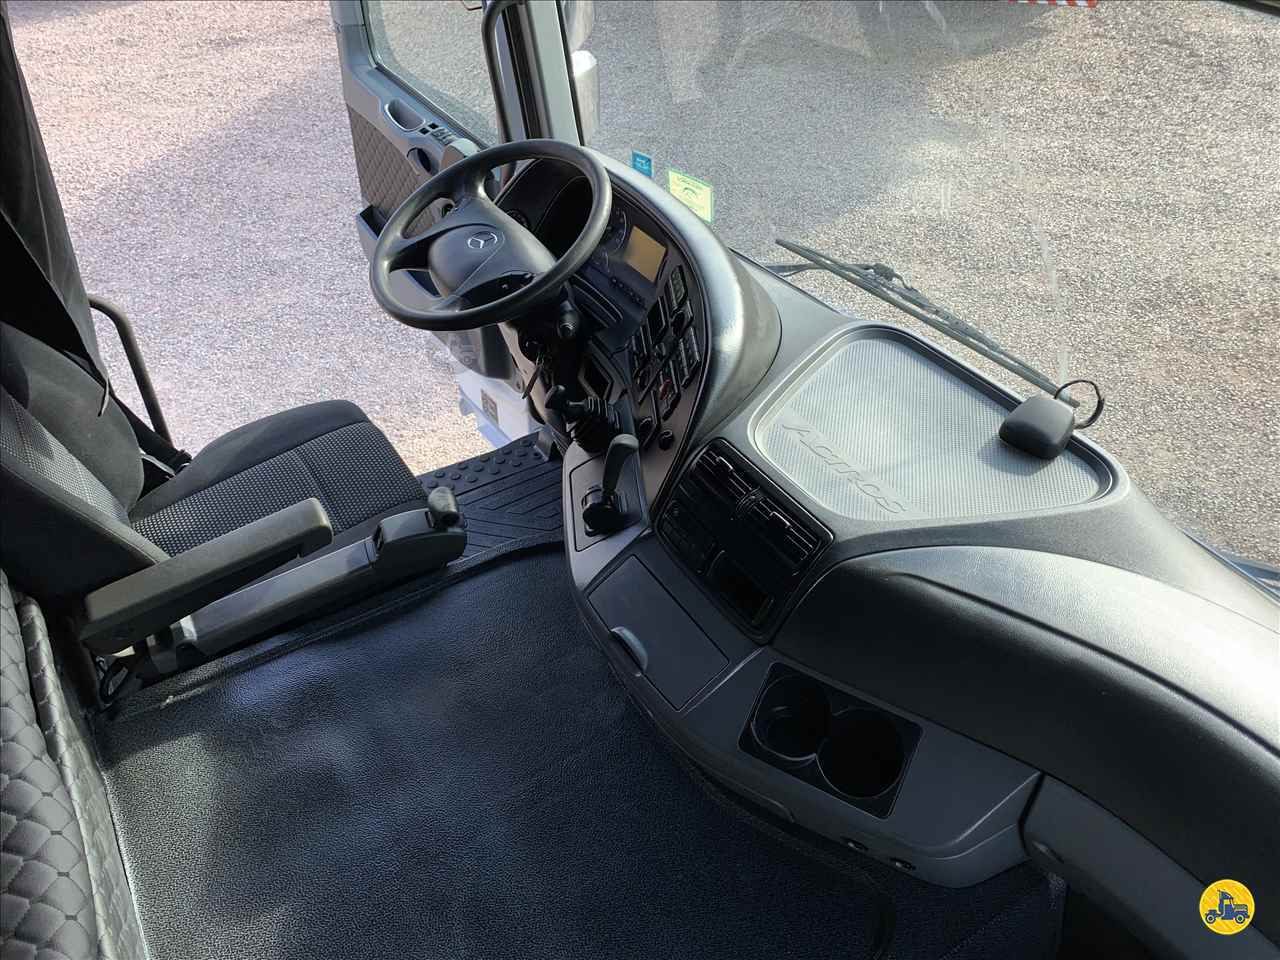 MERCEDES-BENZ MB 2546 315000km 2012/2012 MacTruck